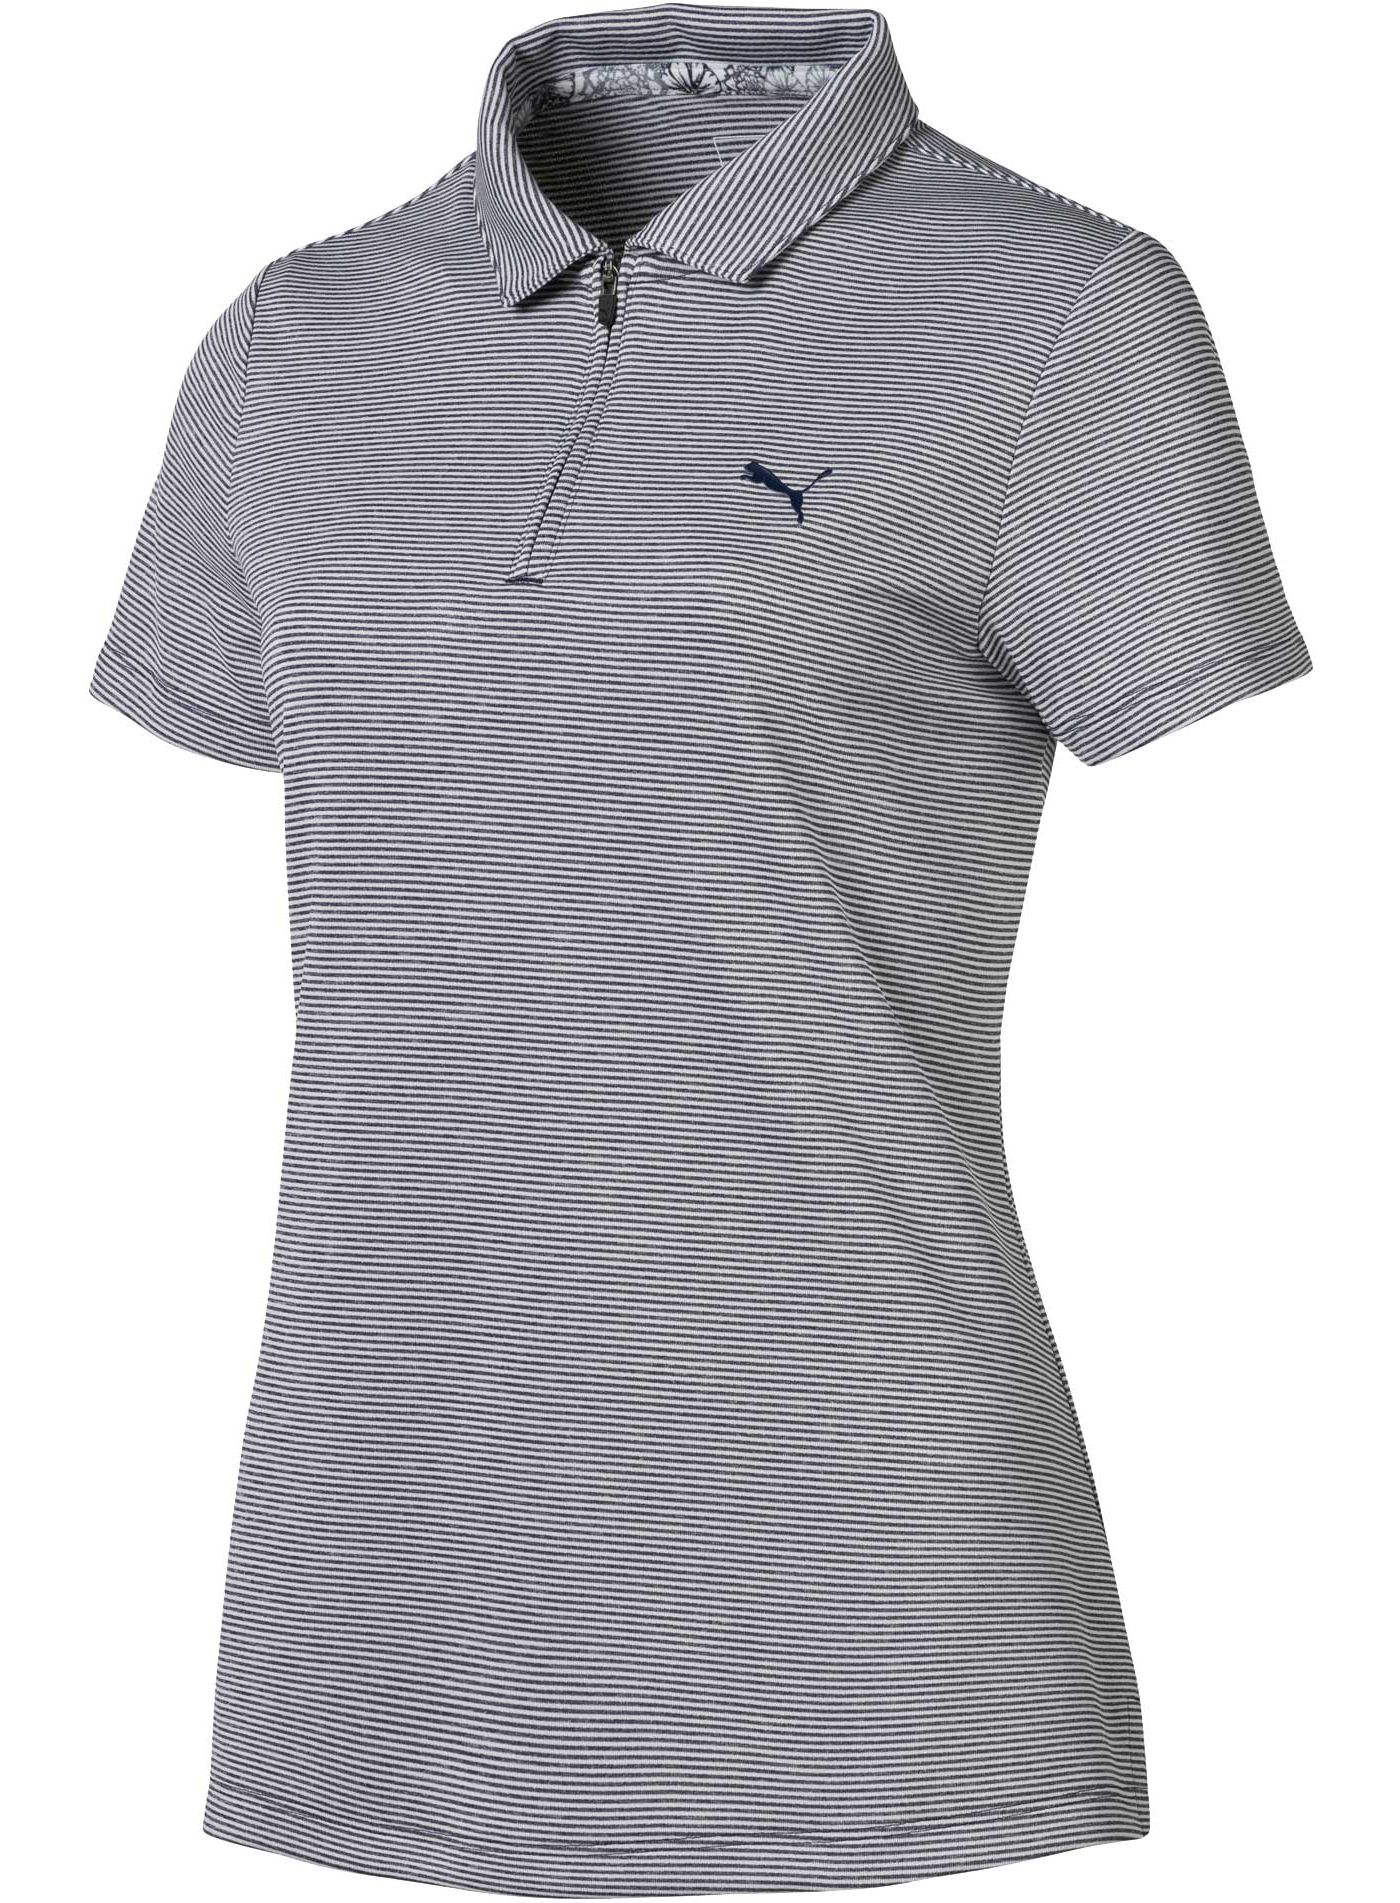 PUMA Women's Soft Stripe Golf Polo